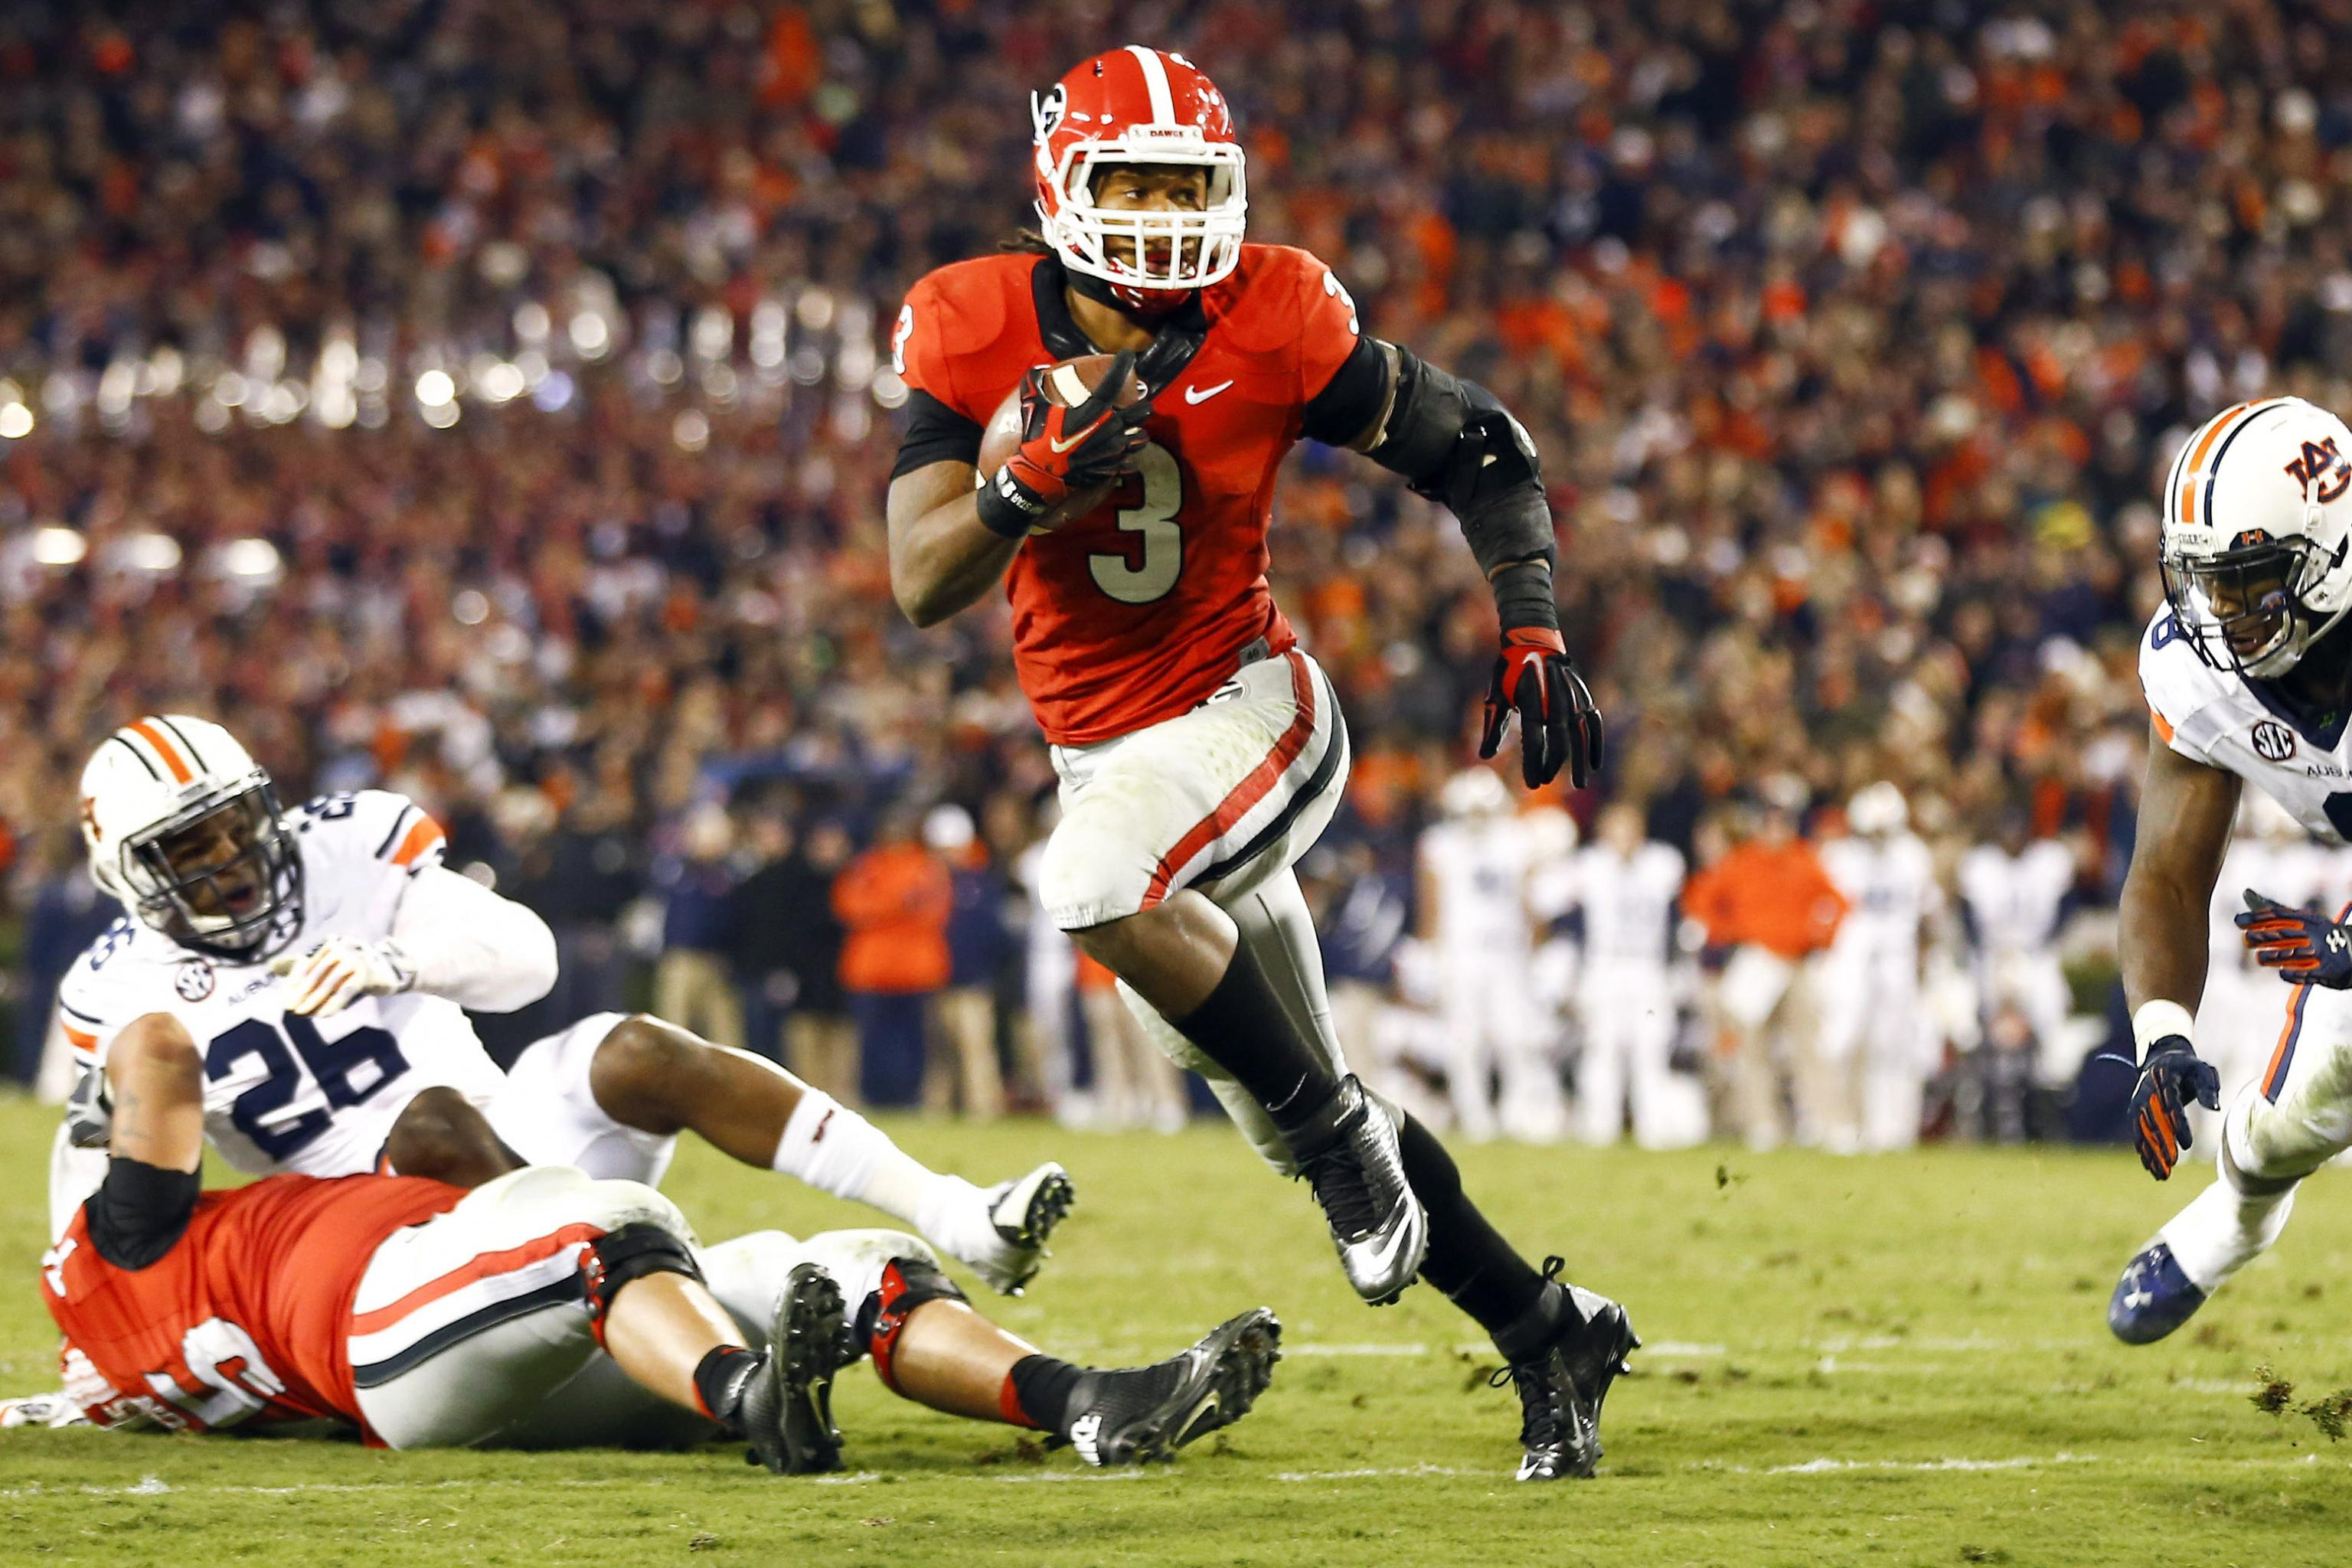 Todd Gurley S Complicated College Football Legacy Bleacher Report Latest News Videos And Highlights